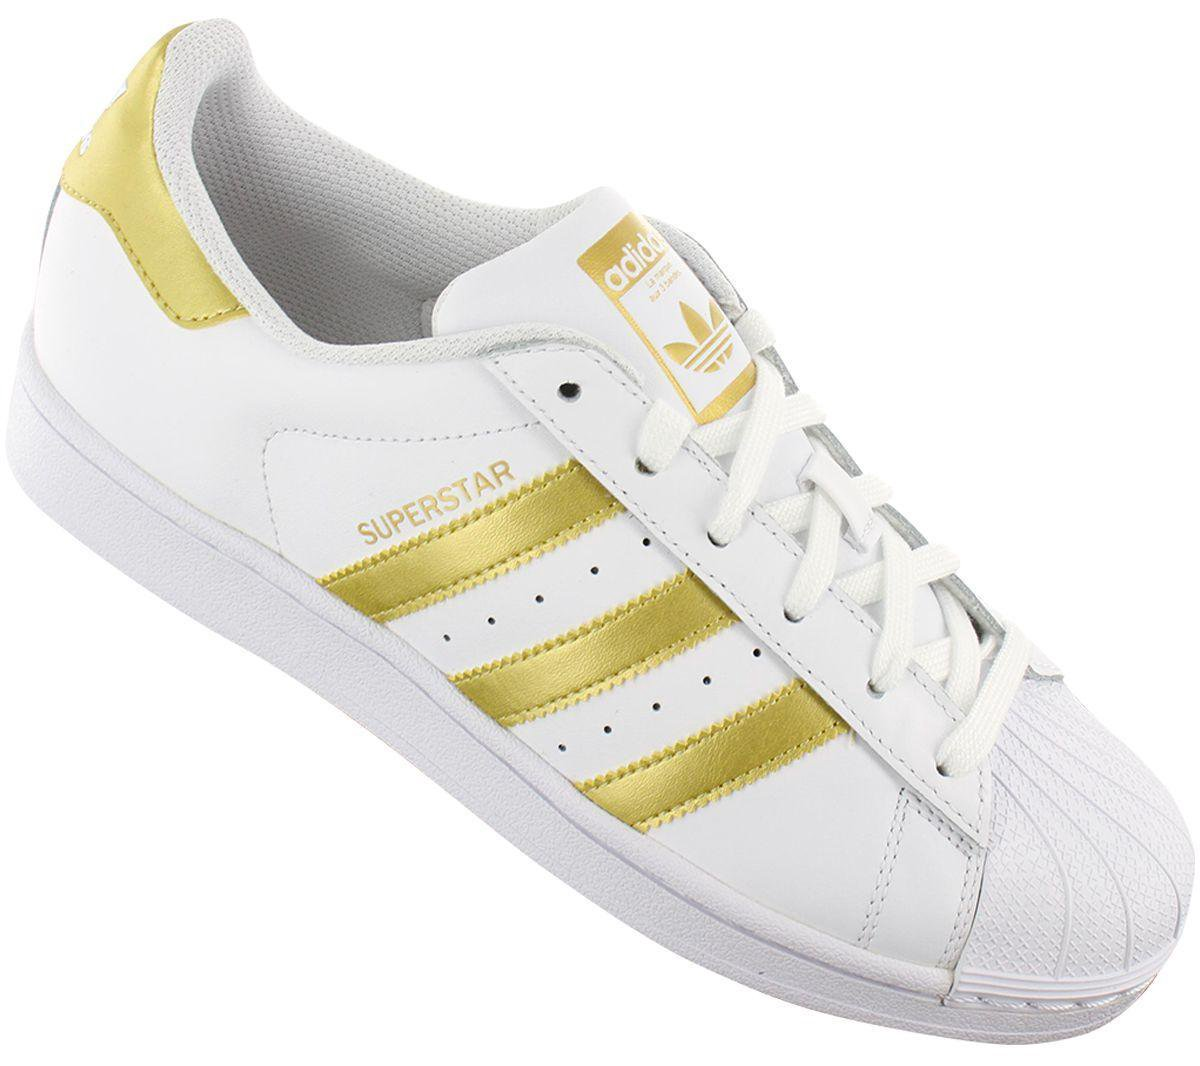 adidas Originals Superstar BY8757 - Dames Sneakers Schoenen Sportschoenen Wit-Goud -... FoFgS